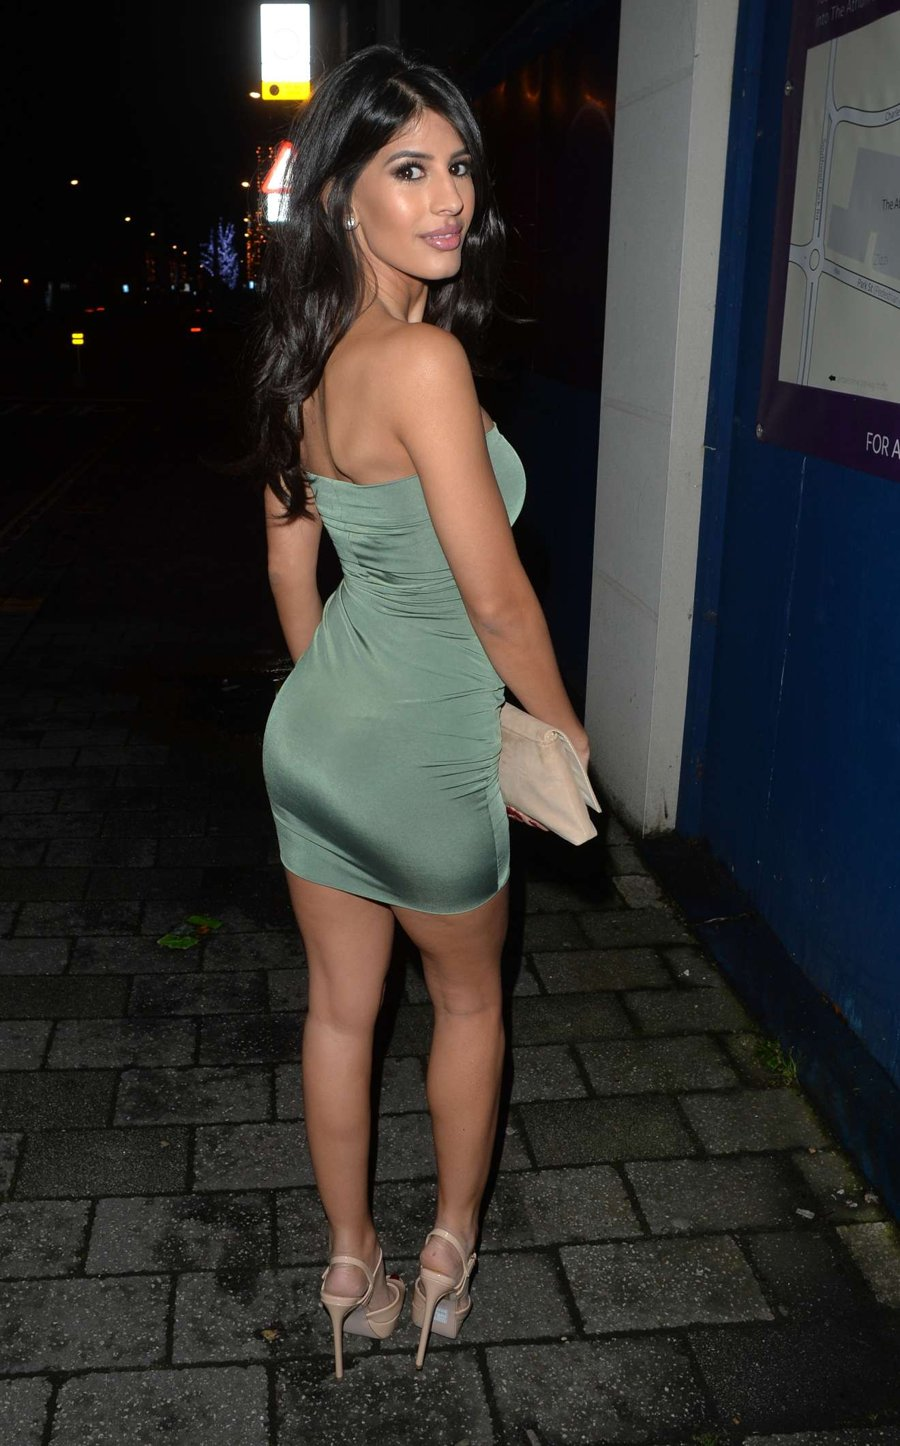 Jasmin Walia Wearing Strapless Mini Dress On New Year S